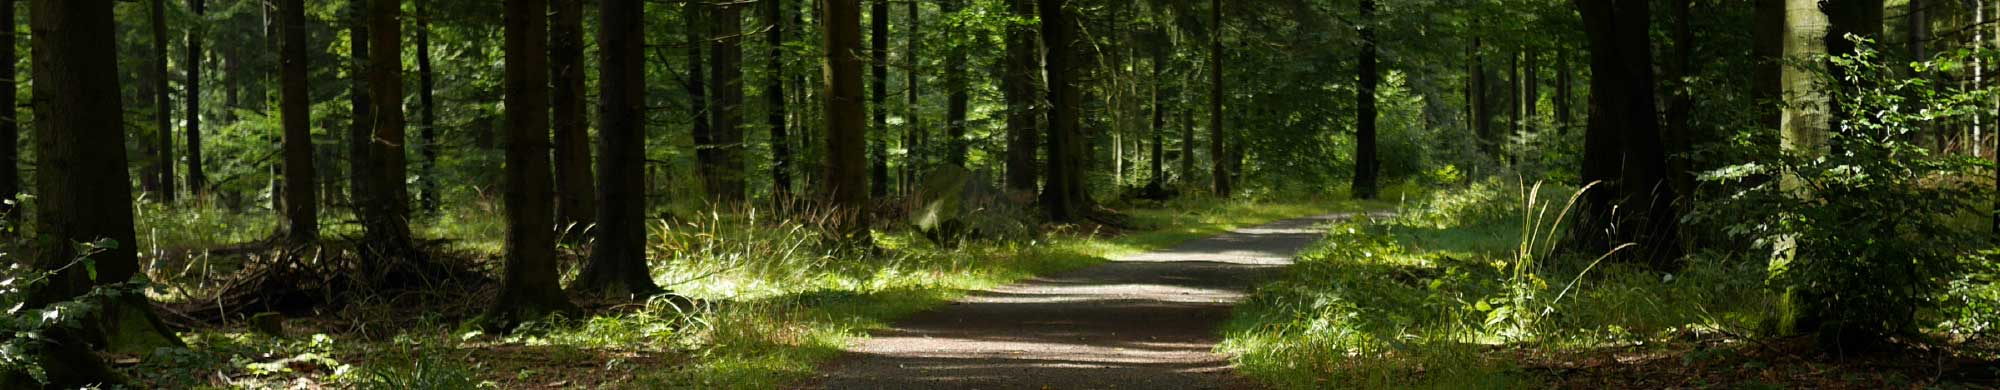 banner-green-meetings-forest